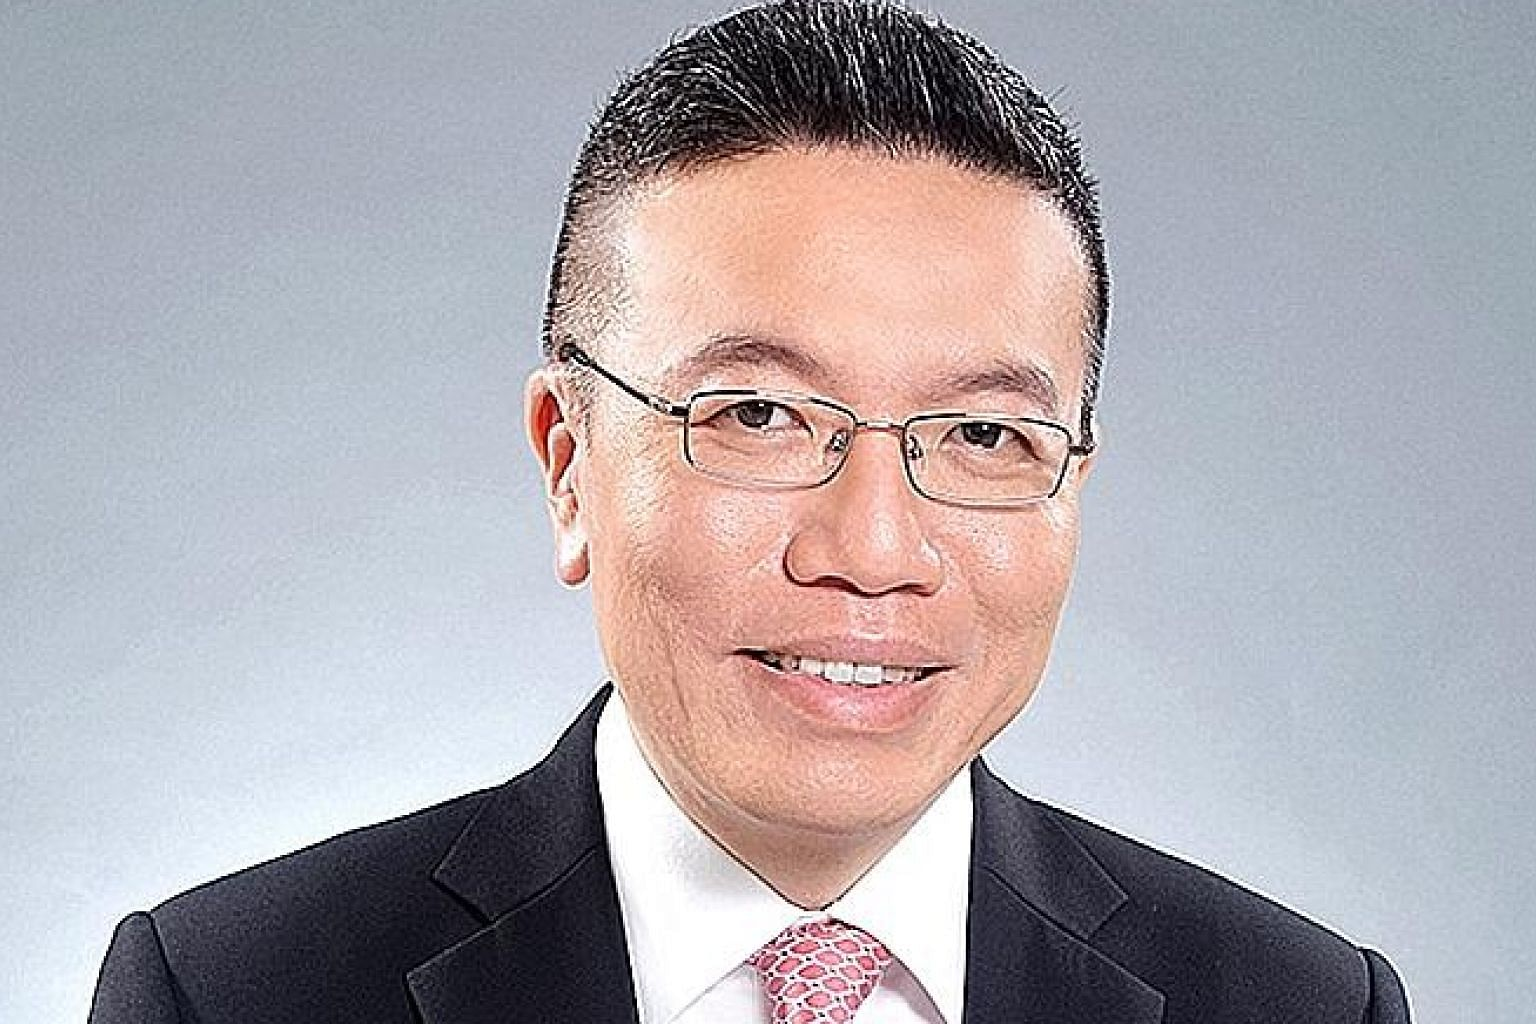 Dr Joelle Fong points out that those with chronic health conditions could benefit most from taking up CareShield Life. Providend CEO Christopher Tan suggests people with existing ElderShield supplements review the benefits first. SingCapital chief ex